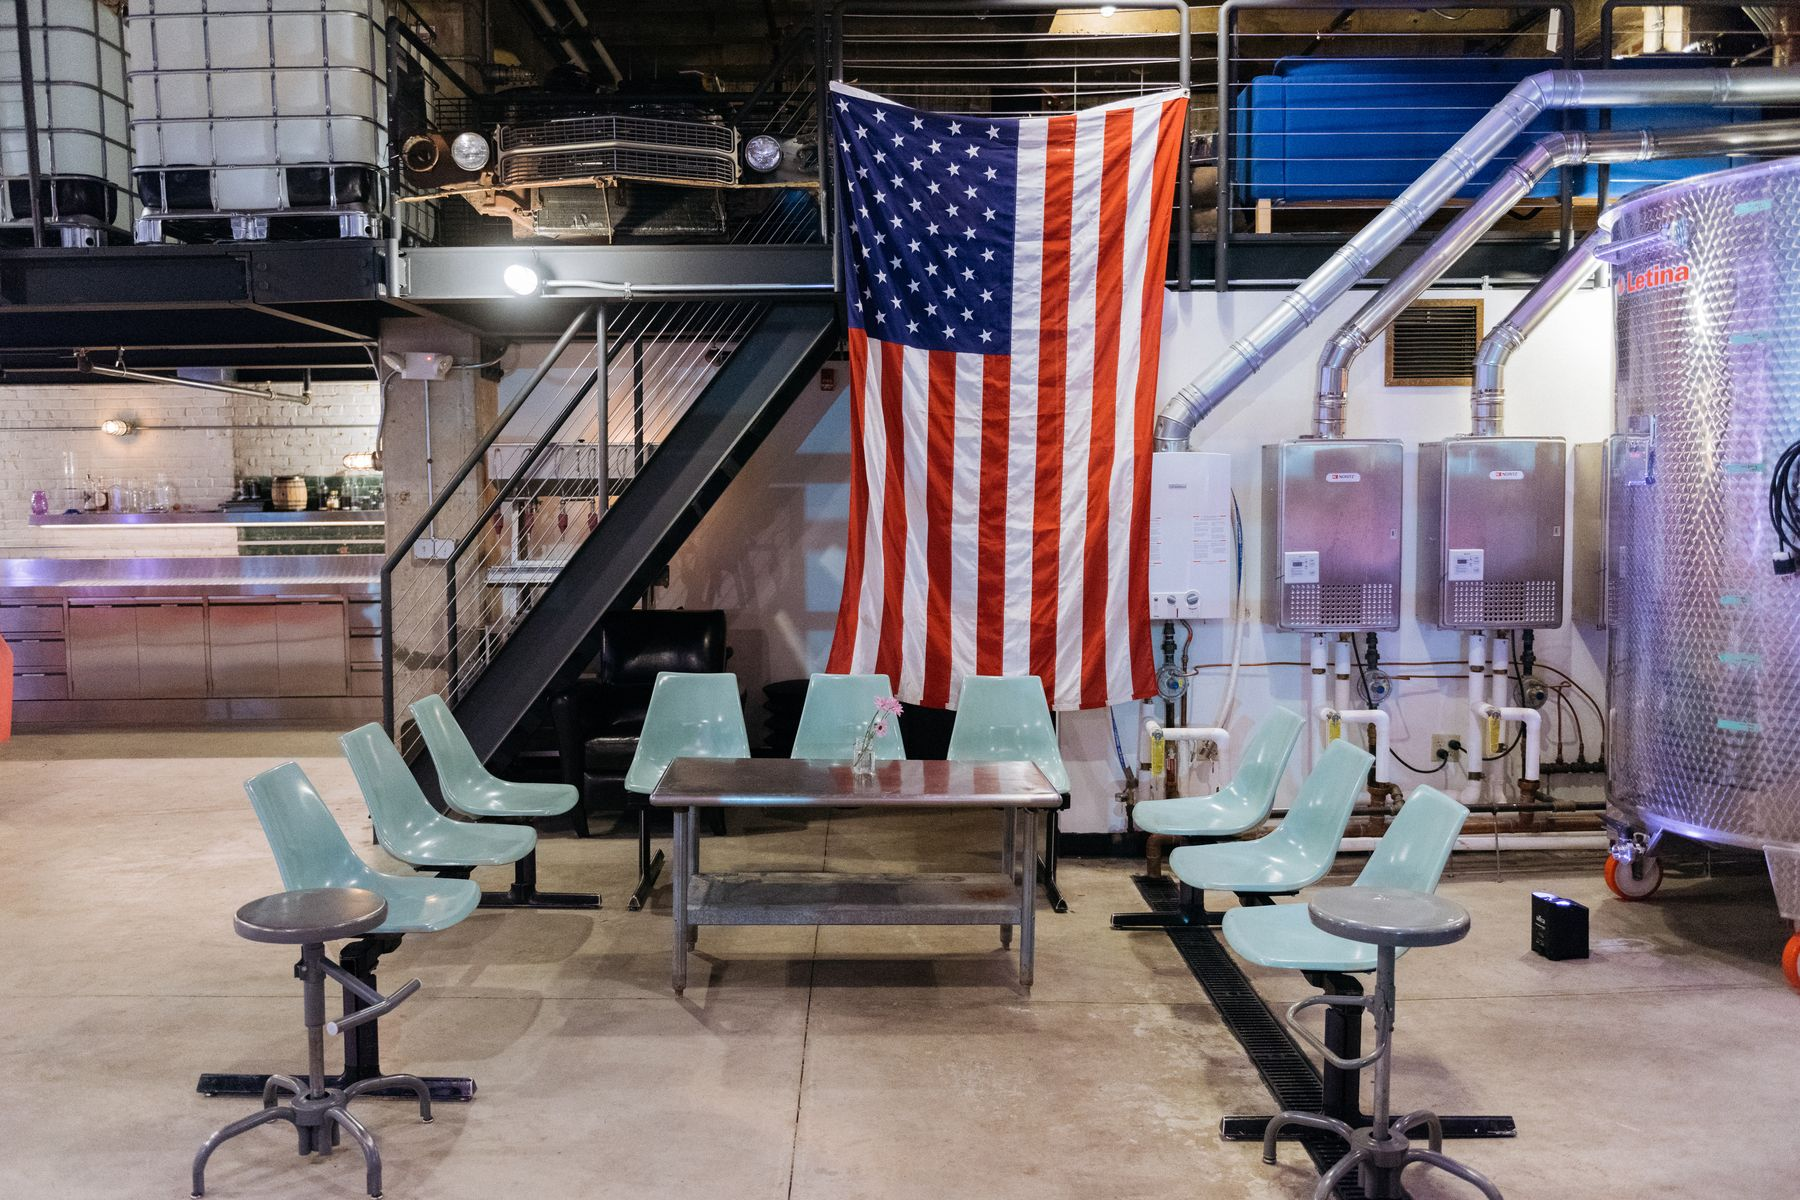 DC Distillery, Republic Restoratives, Details, Flag, American Flag, Chris Ferenzi Photography